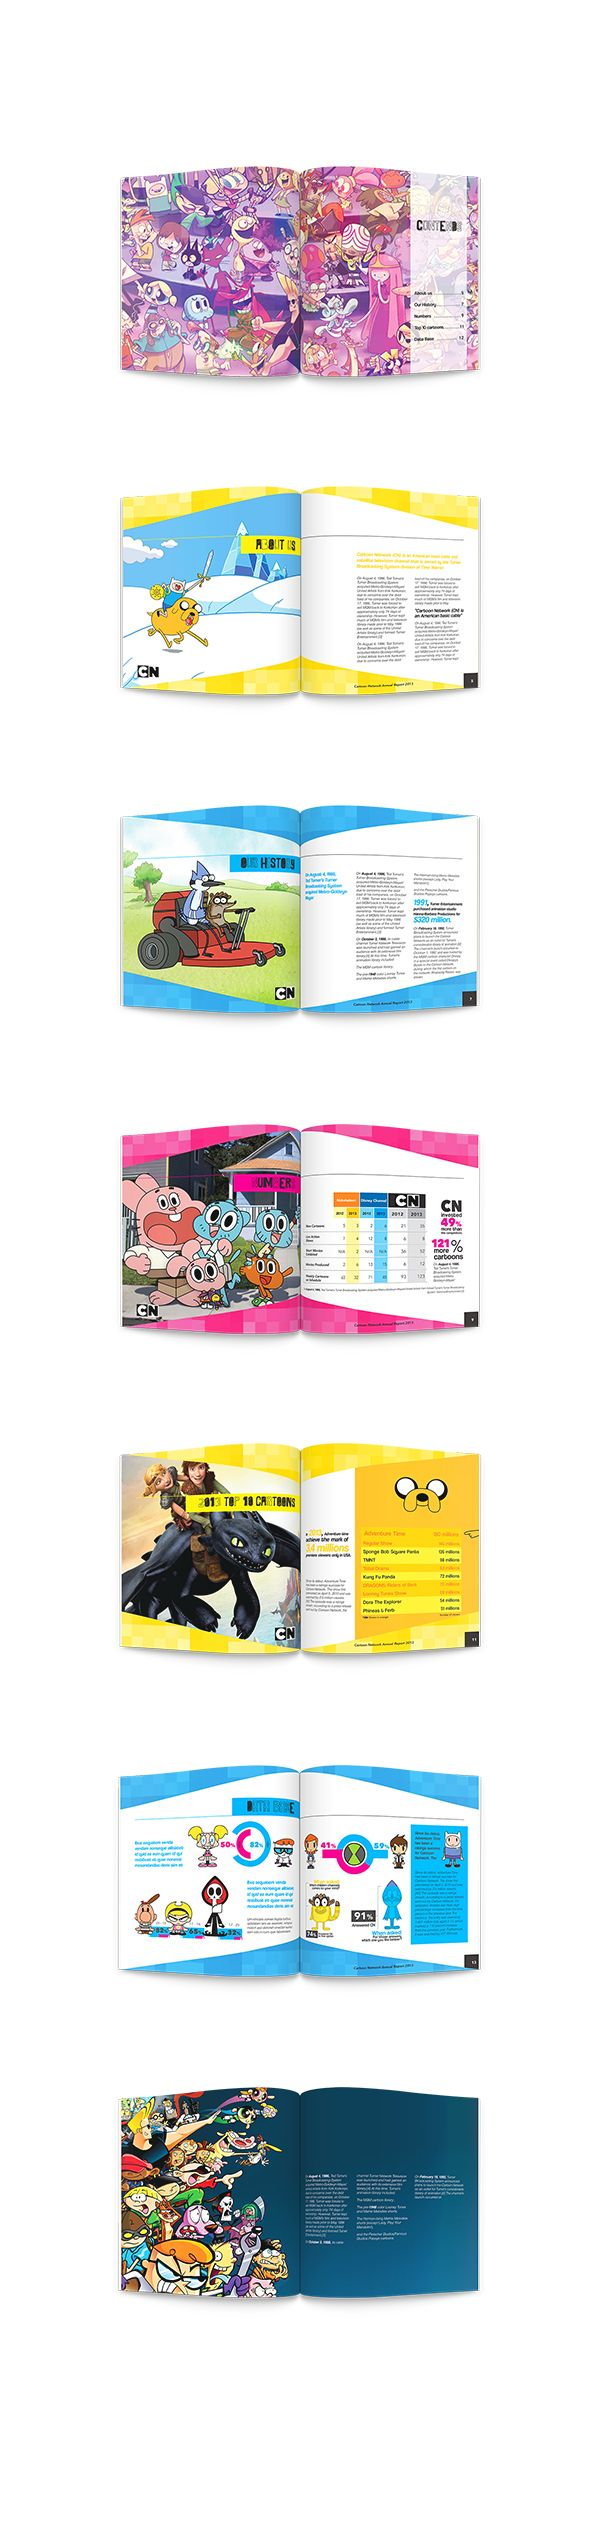 Annual report brochure for Cartoon Network.